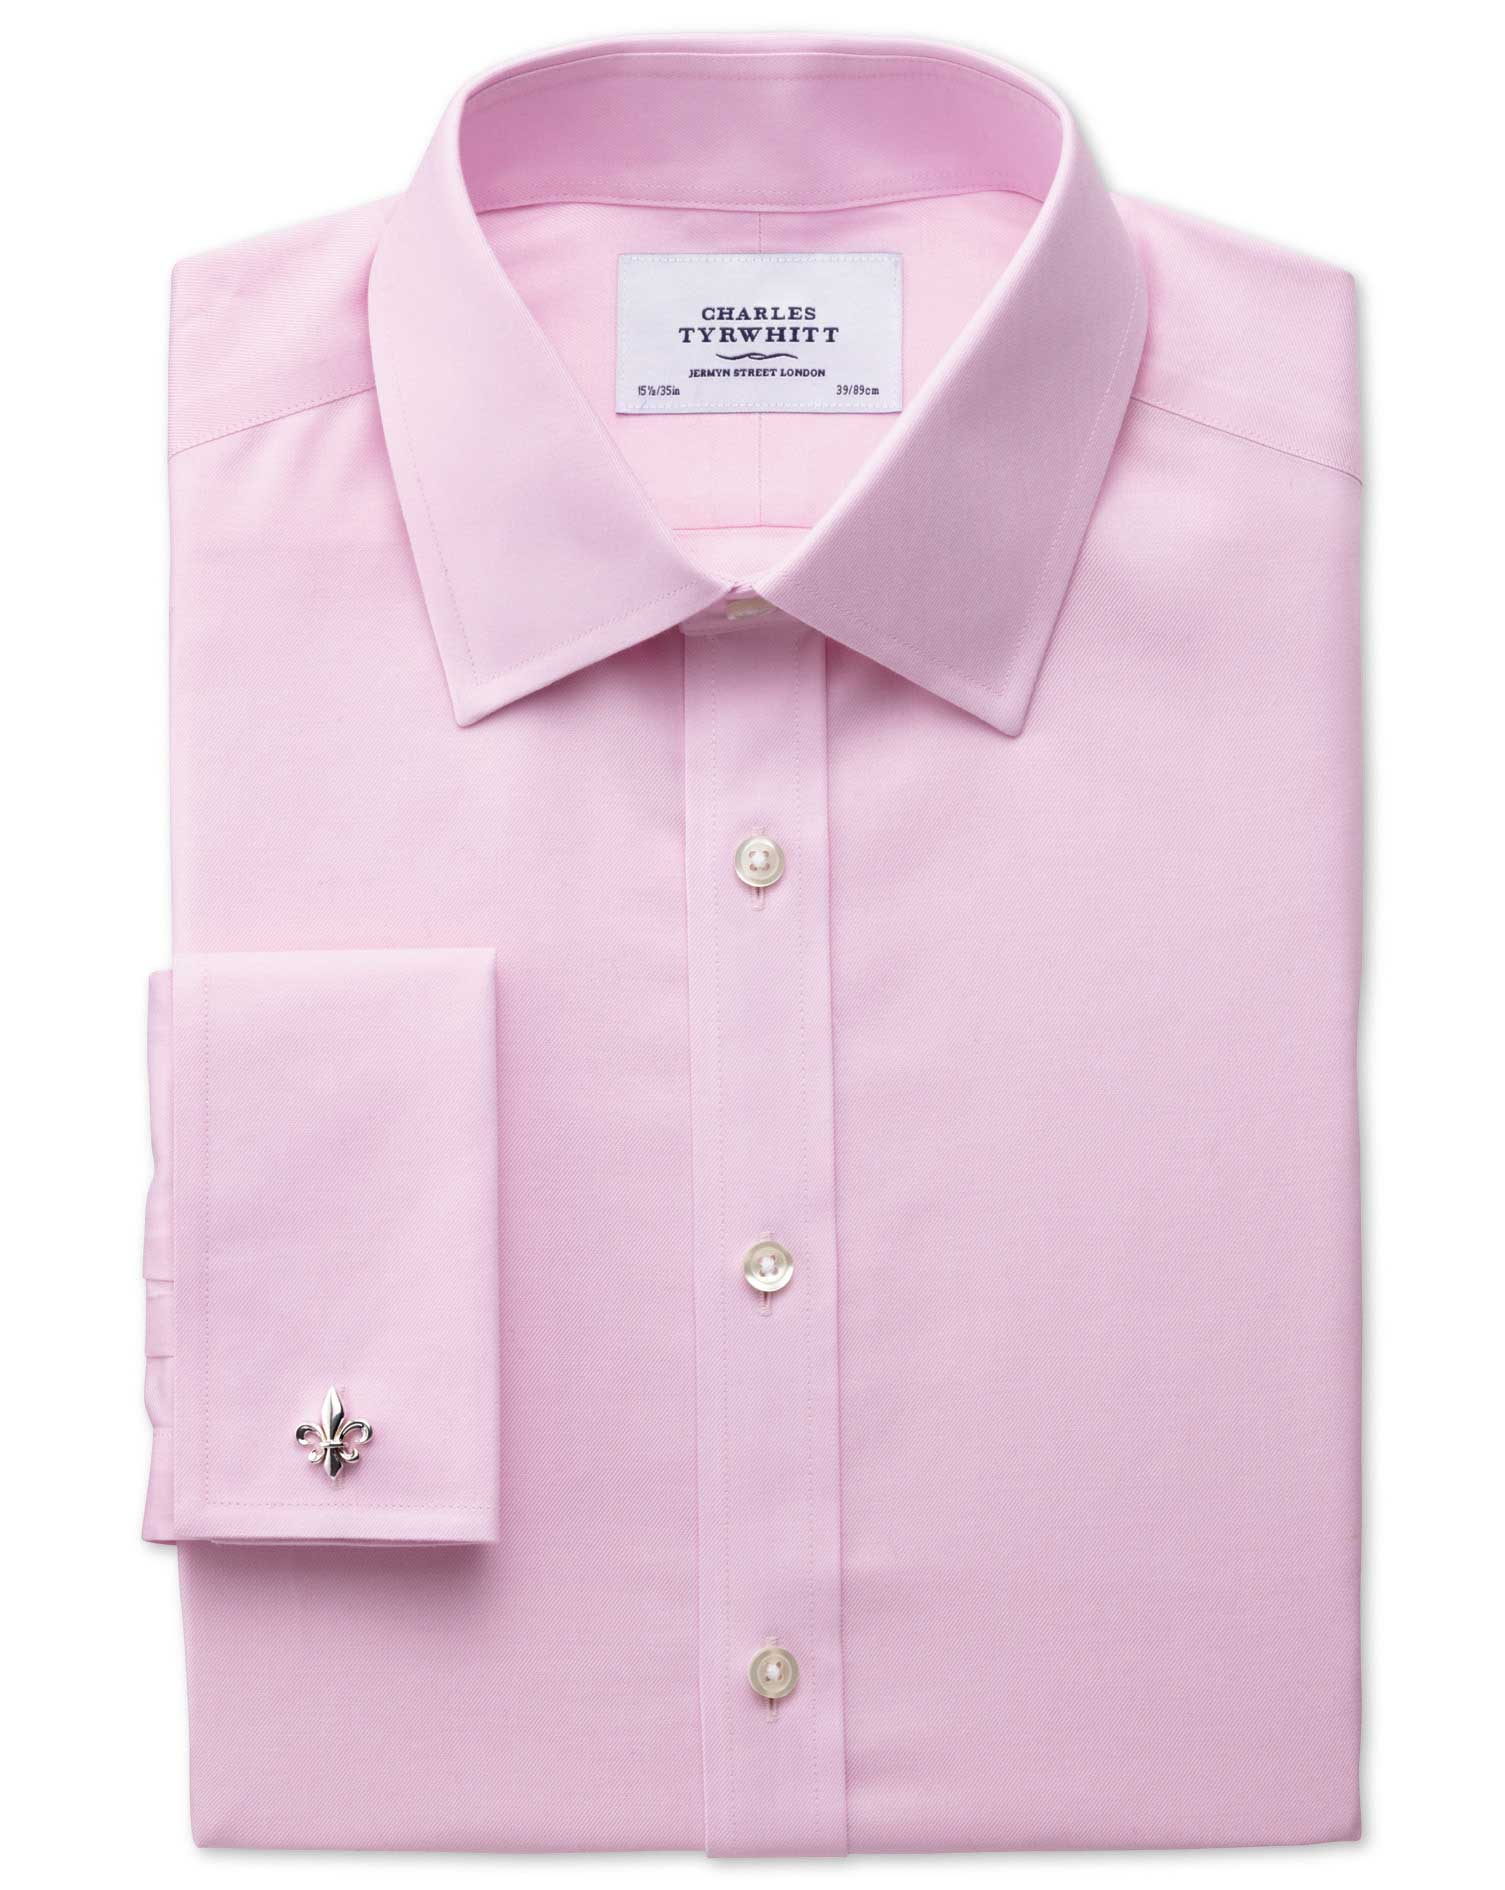 Extra Slim Fit Non-Iron Twill Pink Cotton Formal Shirt Double Cuff Size 16.5/36 by Charles Tyrwhitt